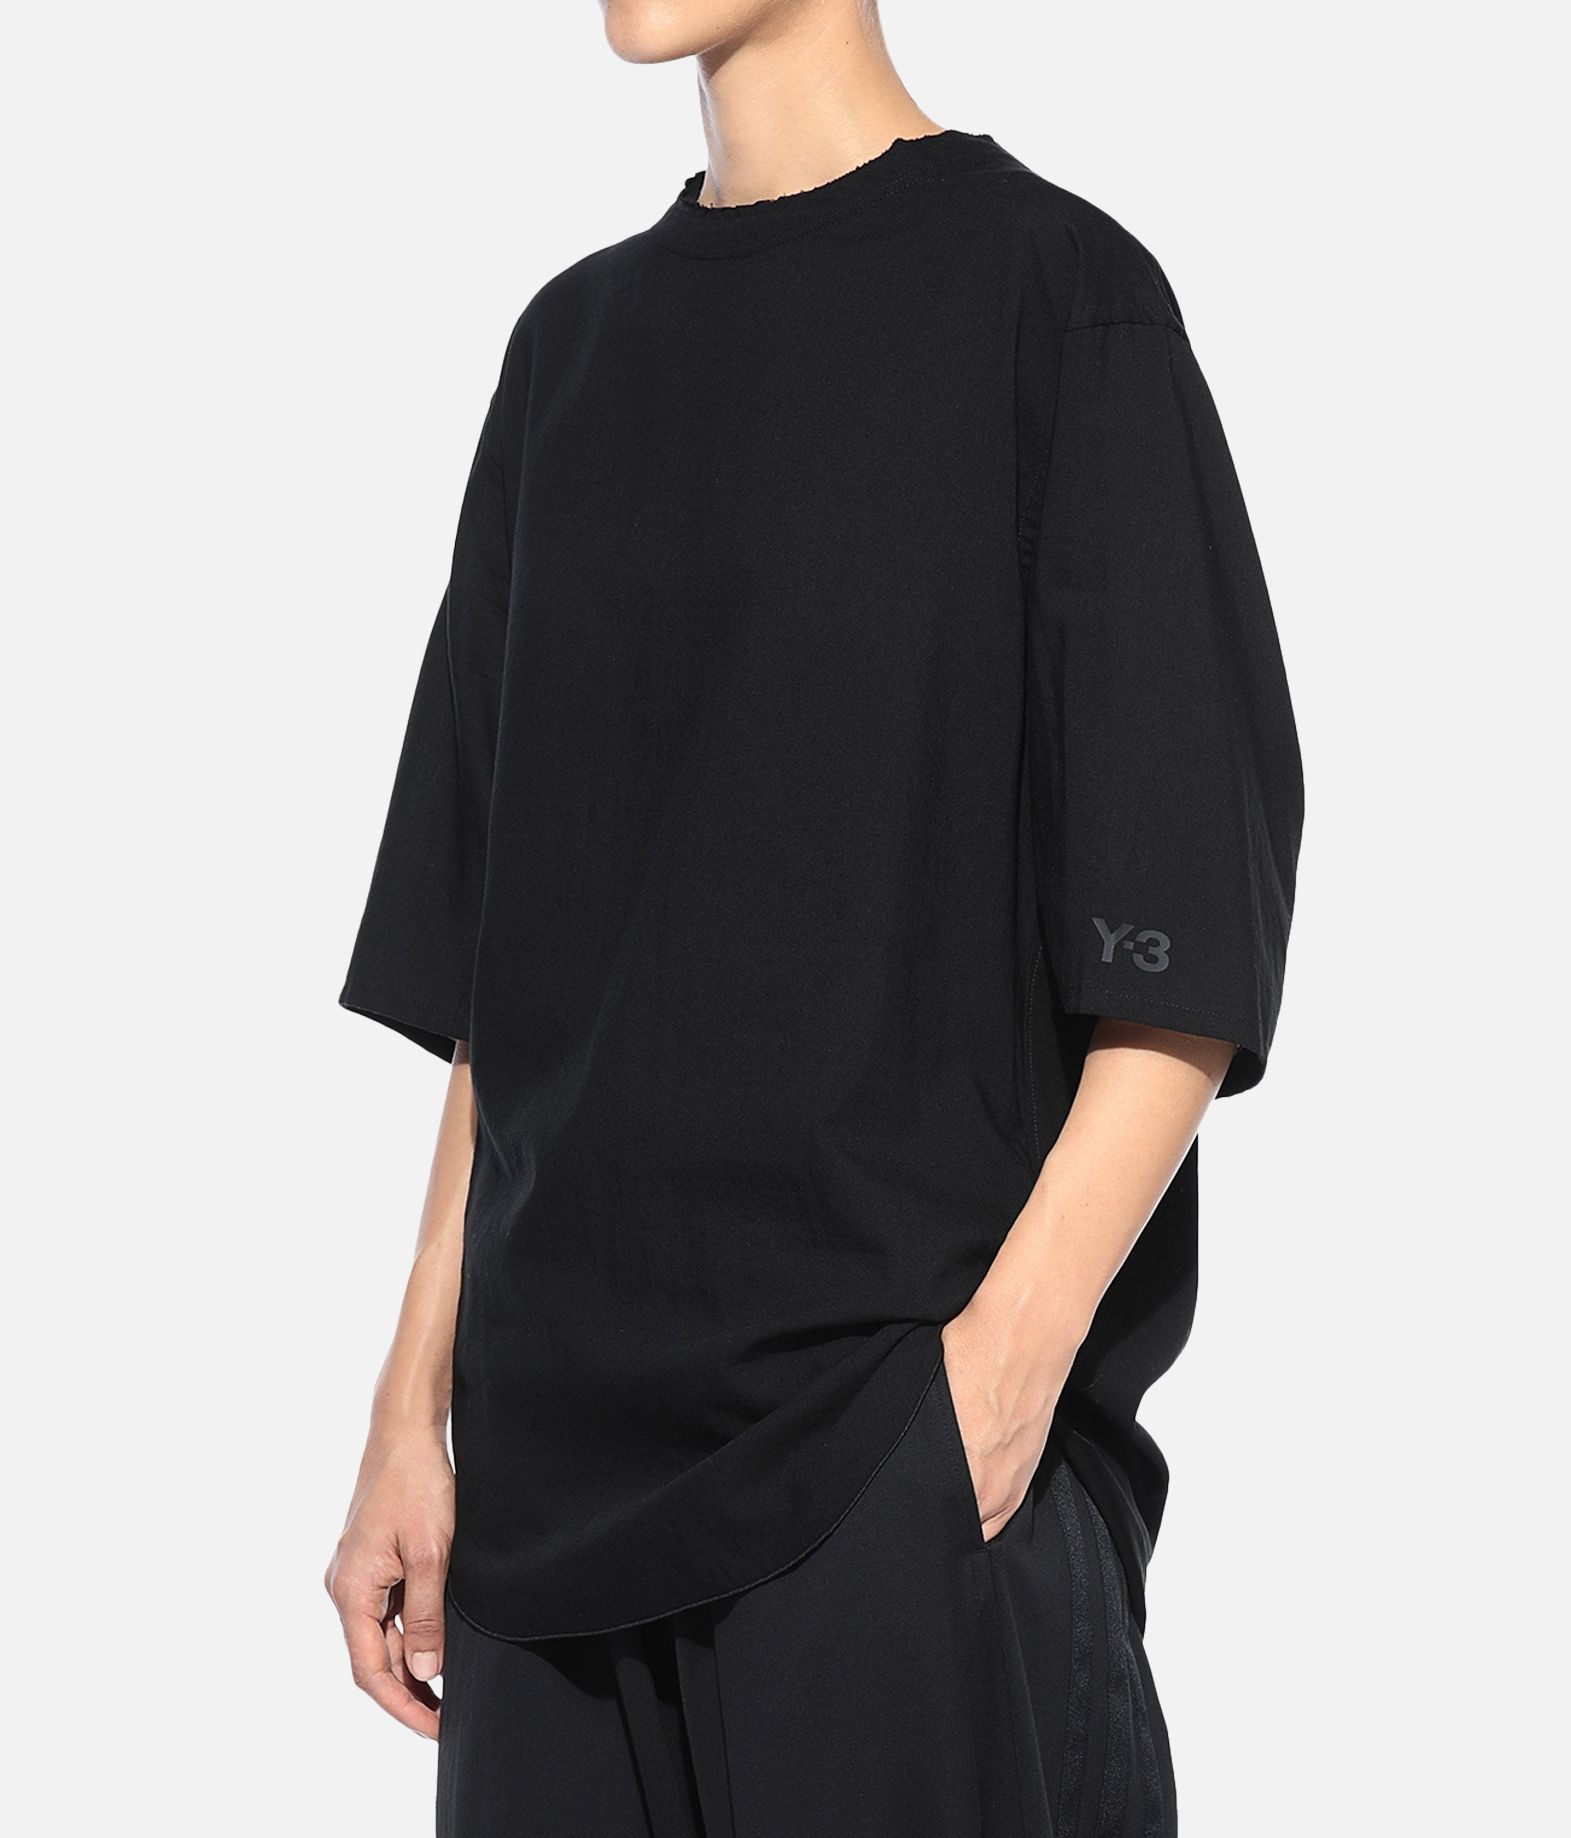 Y-3 Y-3 Long Tee Short sleeve t-shirt Woman e